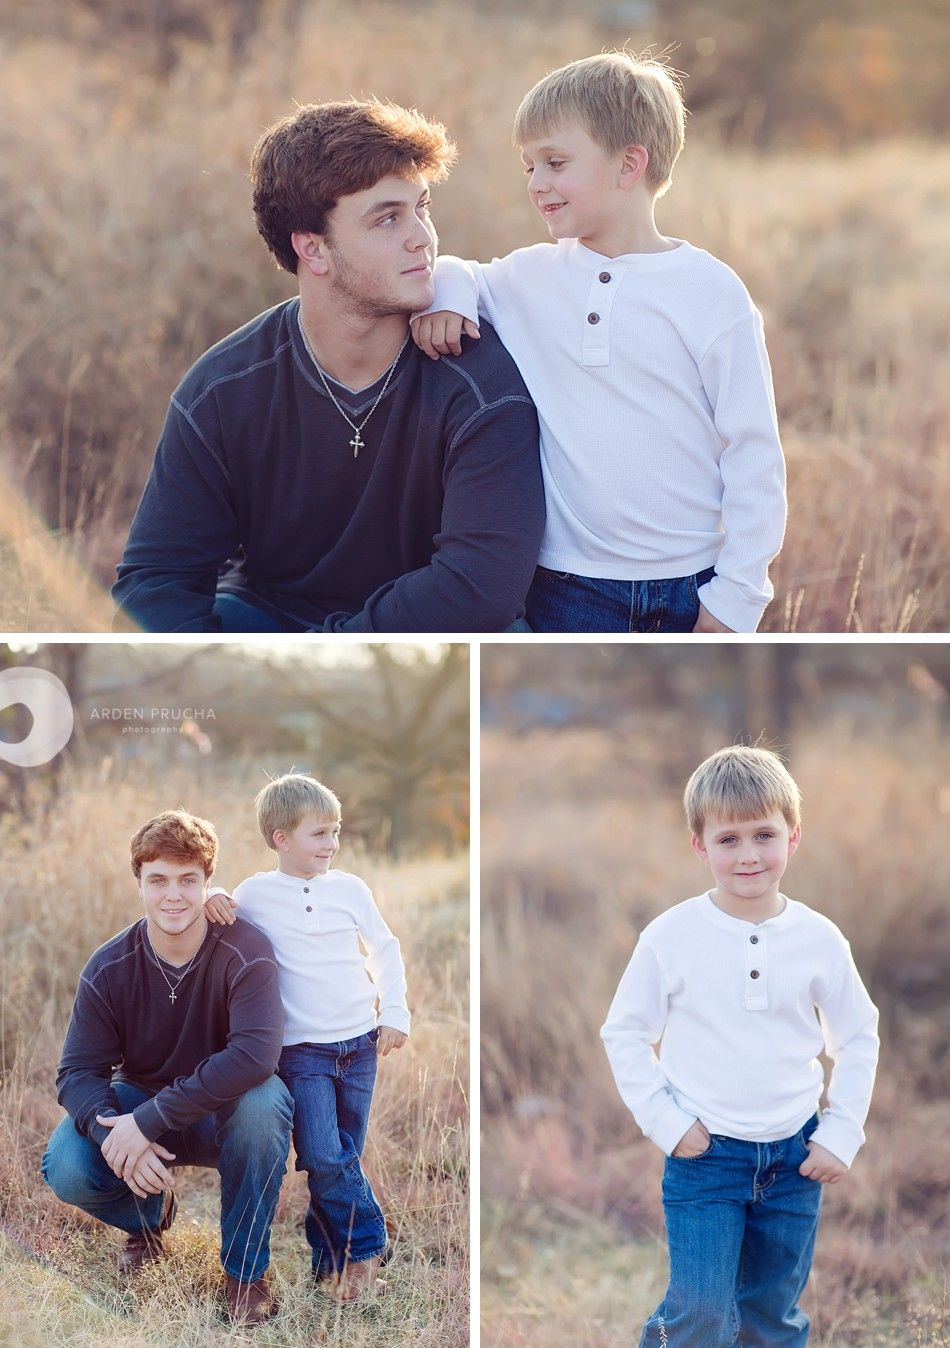 Older & Younger sib family poses - Arden Prucha Photography, ardenprucha.com